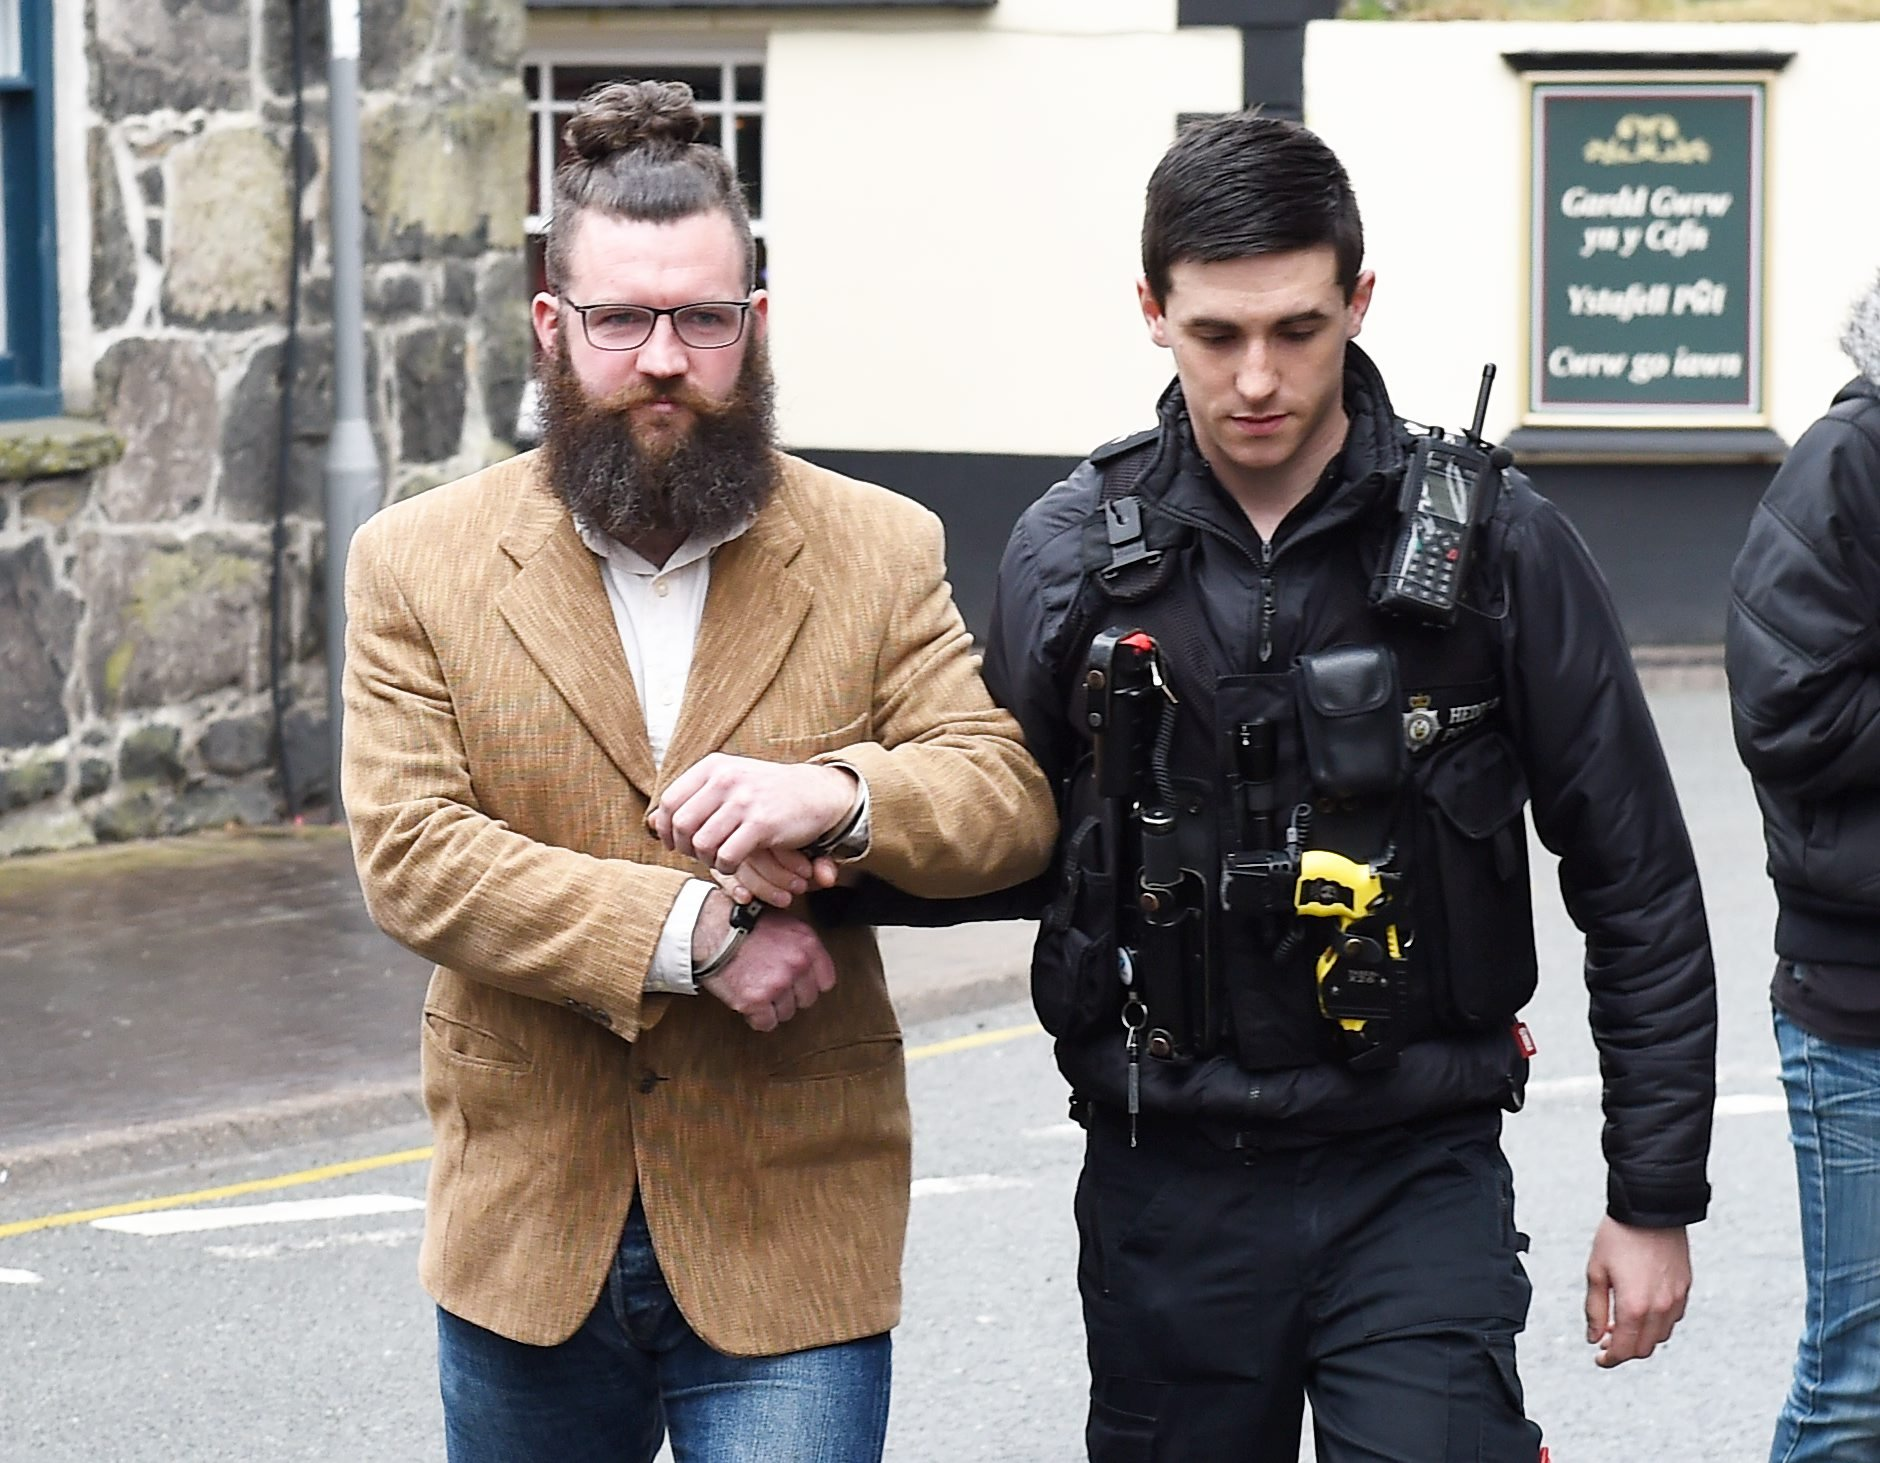 Jackson Beckett Logan has been jailed for 26 weeks (Picture: Erfyl Lloyd Davies Photography)